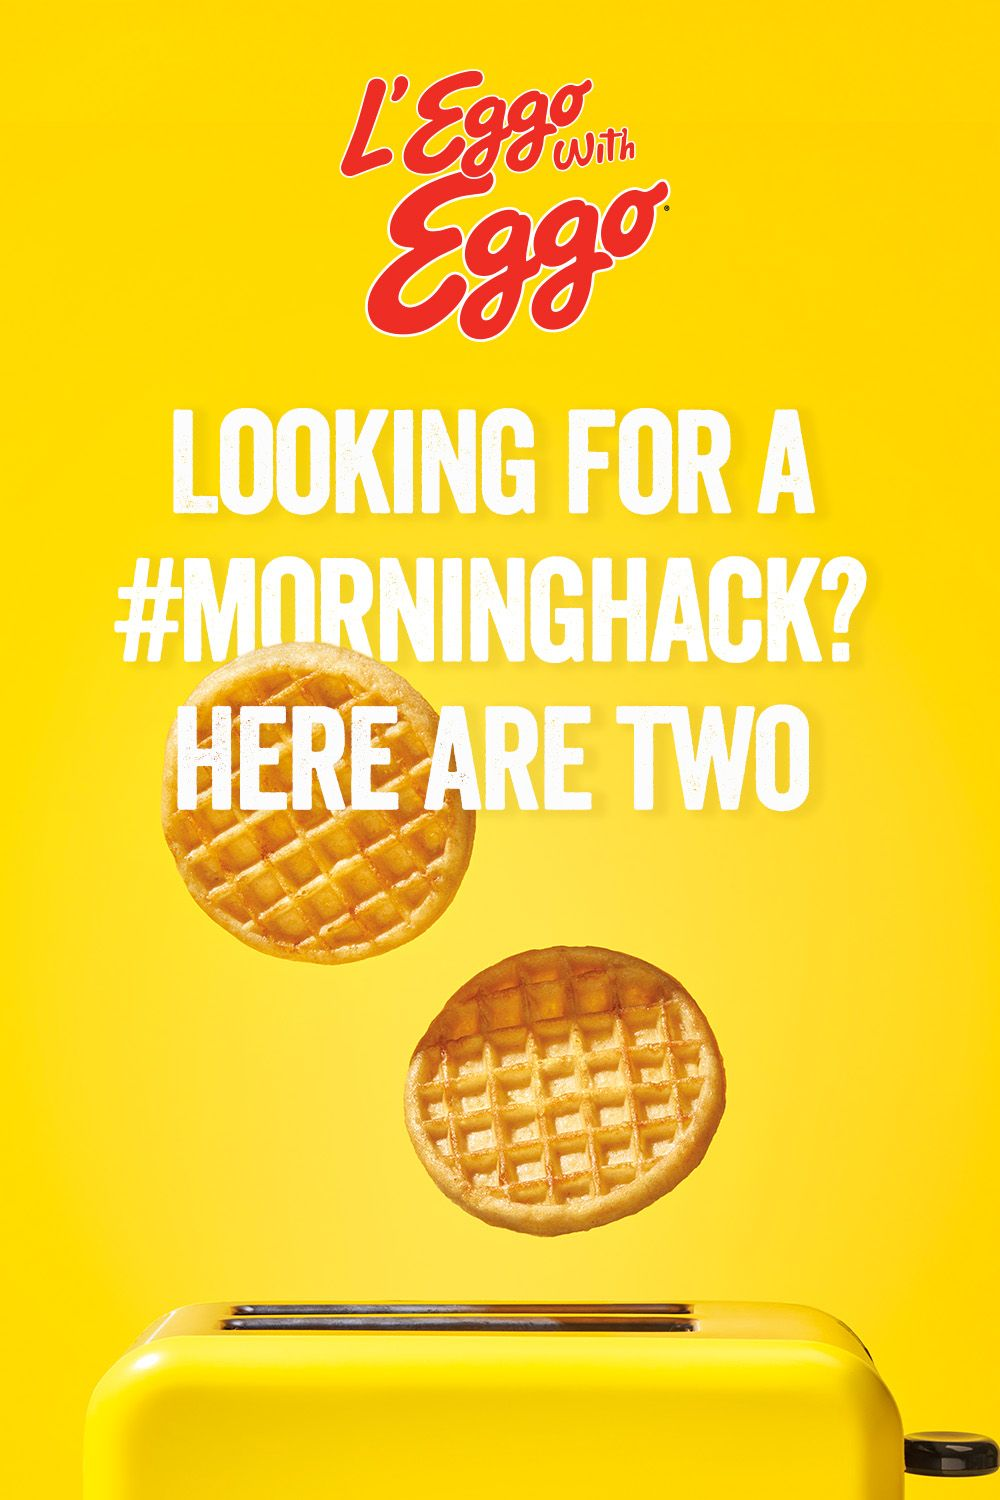 Looking for a #MorningHack? Here are two